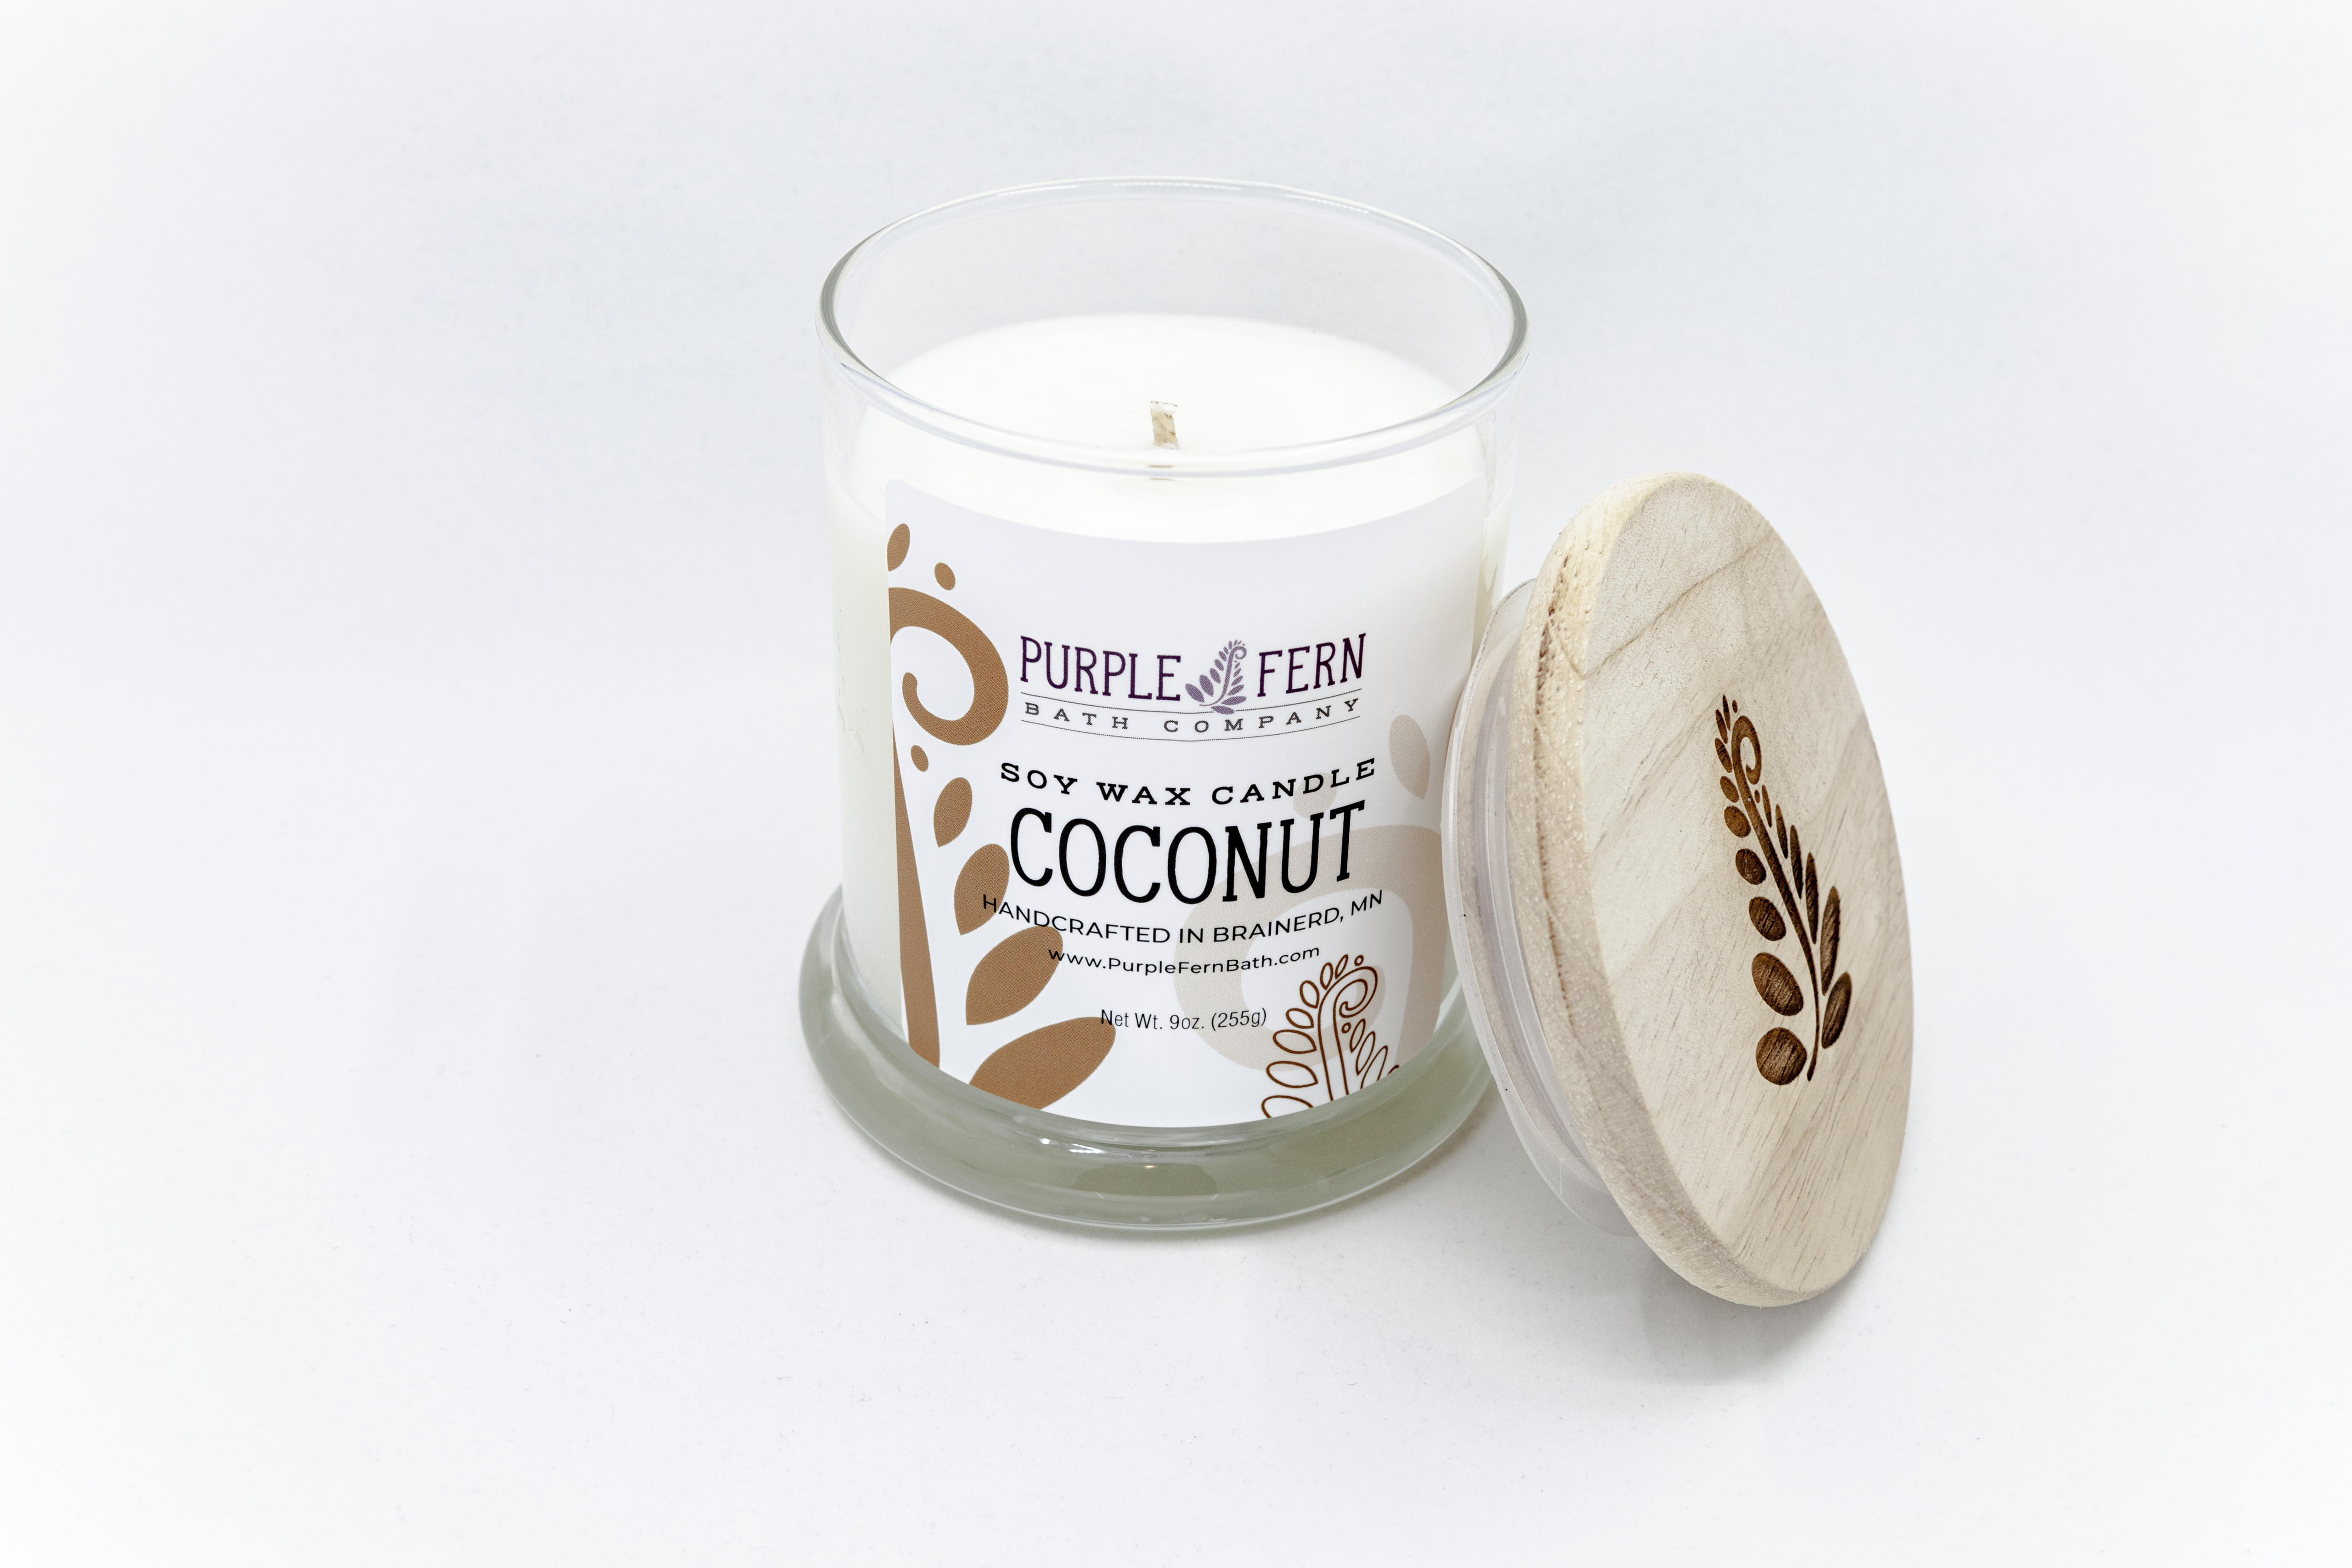 coconut soy wax candle glass jar lid